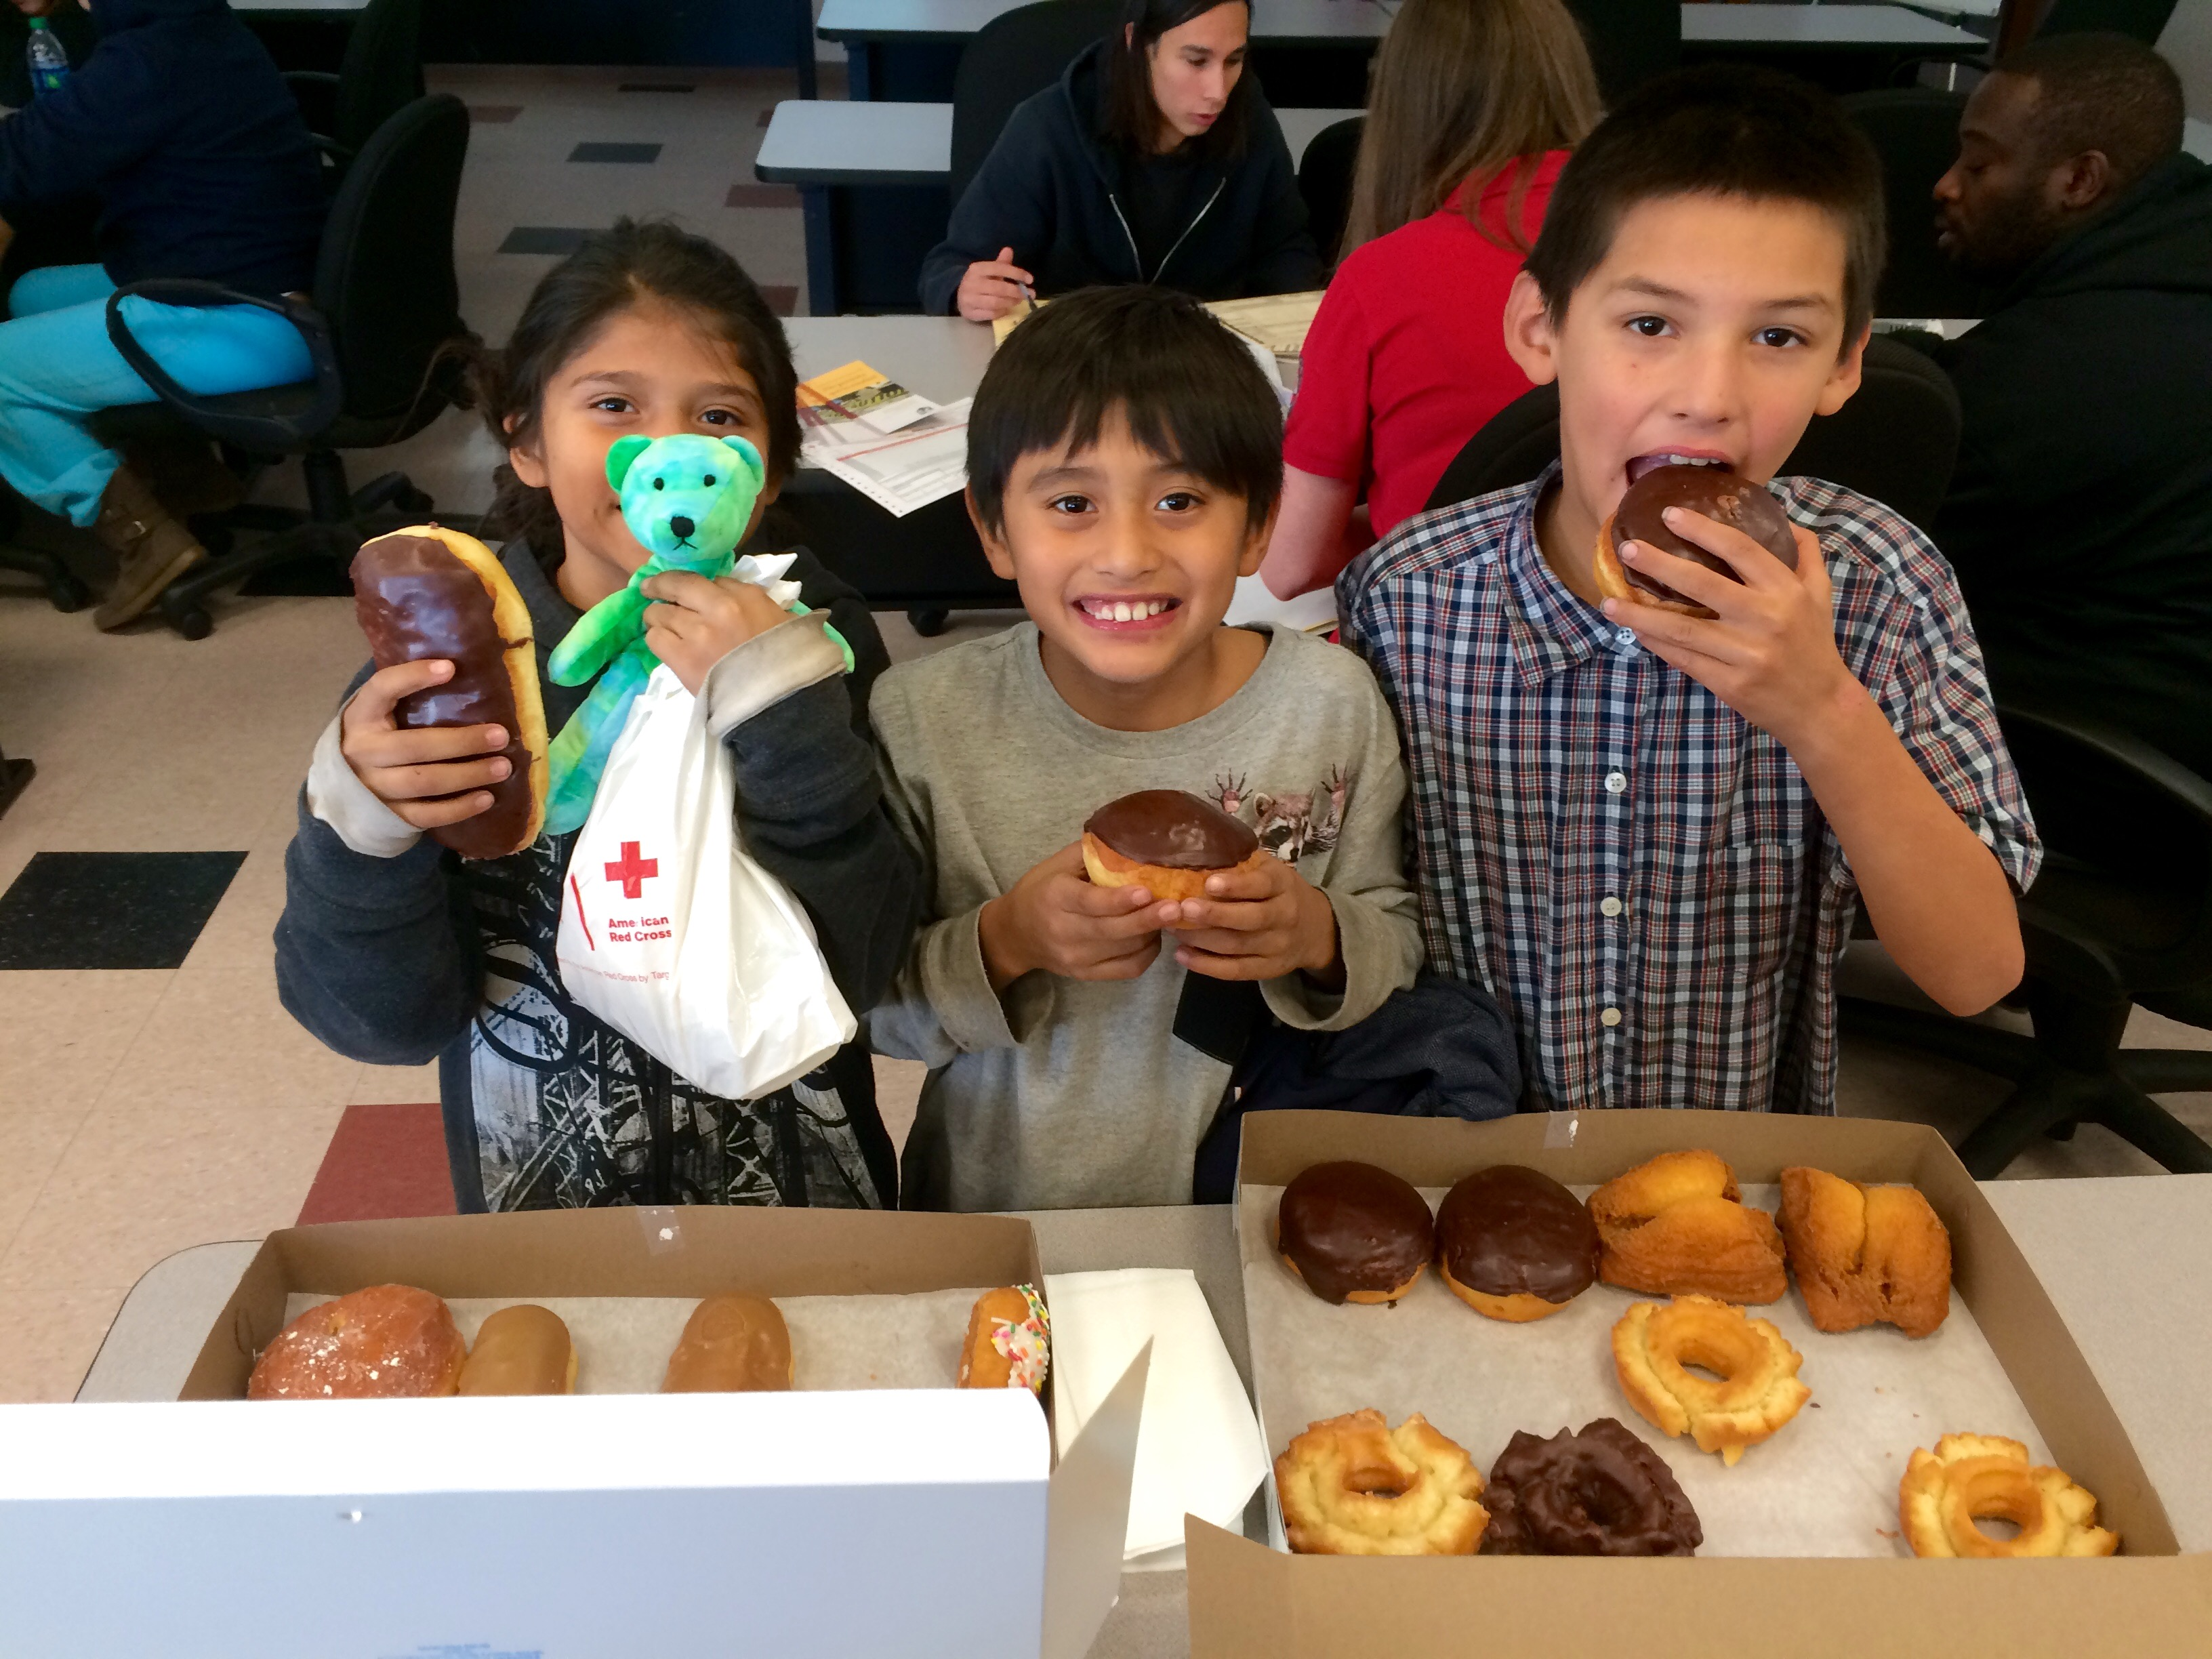 Three smiling children while eating donuts.